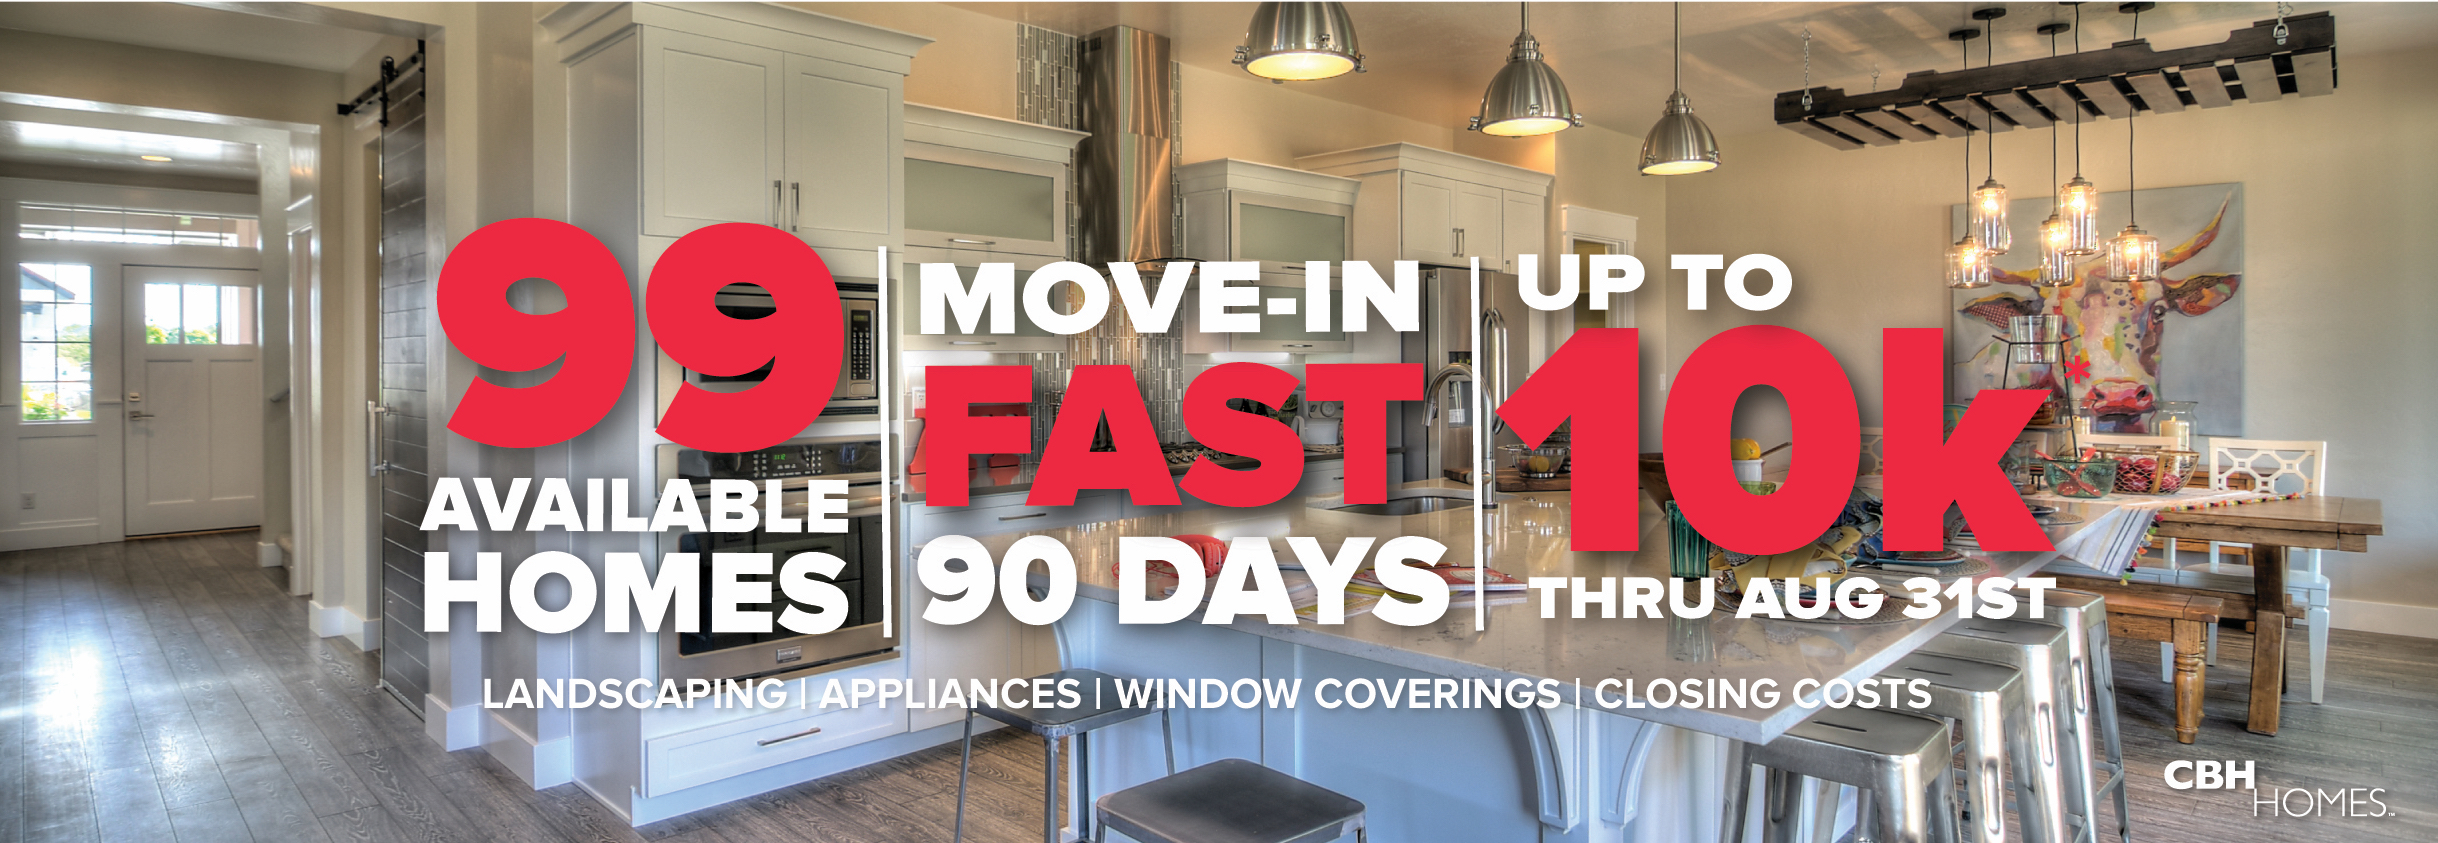 90 Day Move-In Promo   CBH Homes